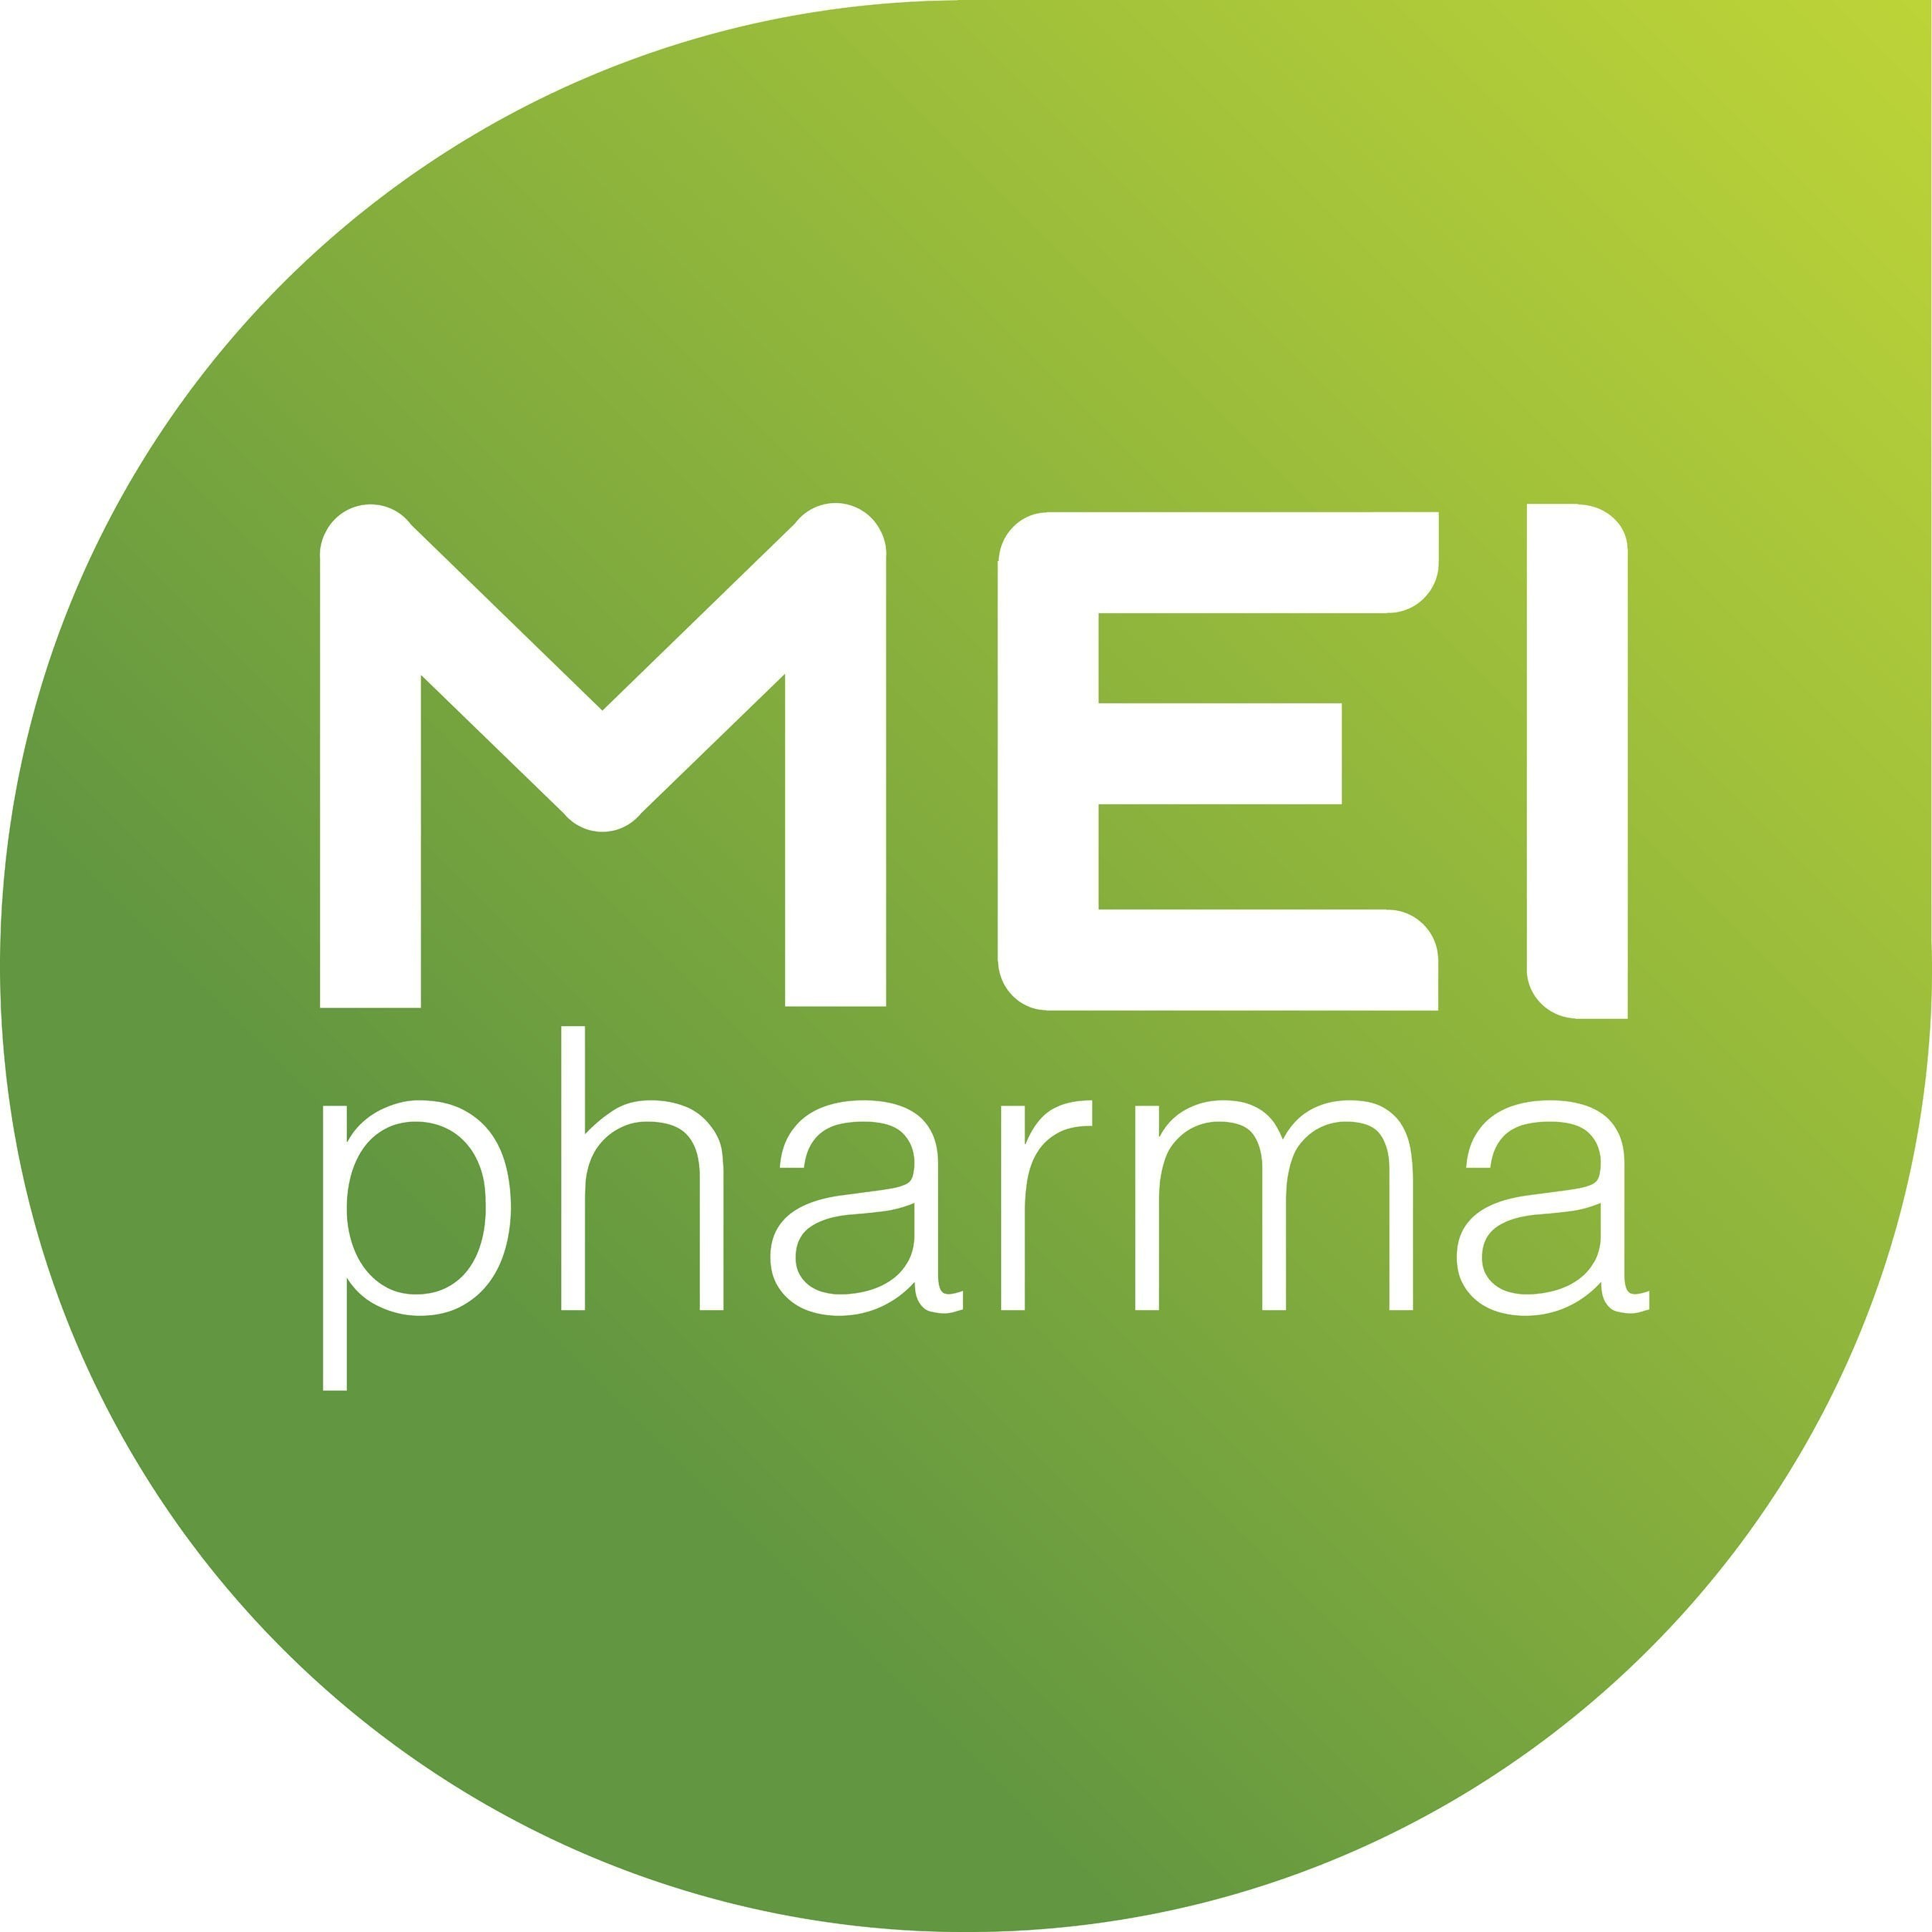 MEI Pharma to Present at 14th Annual BIO Investor Forum